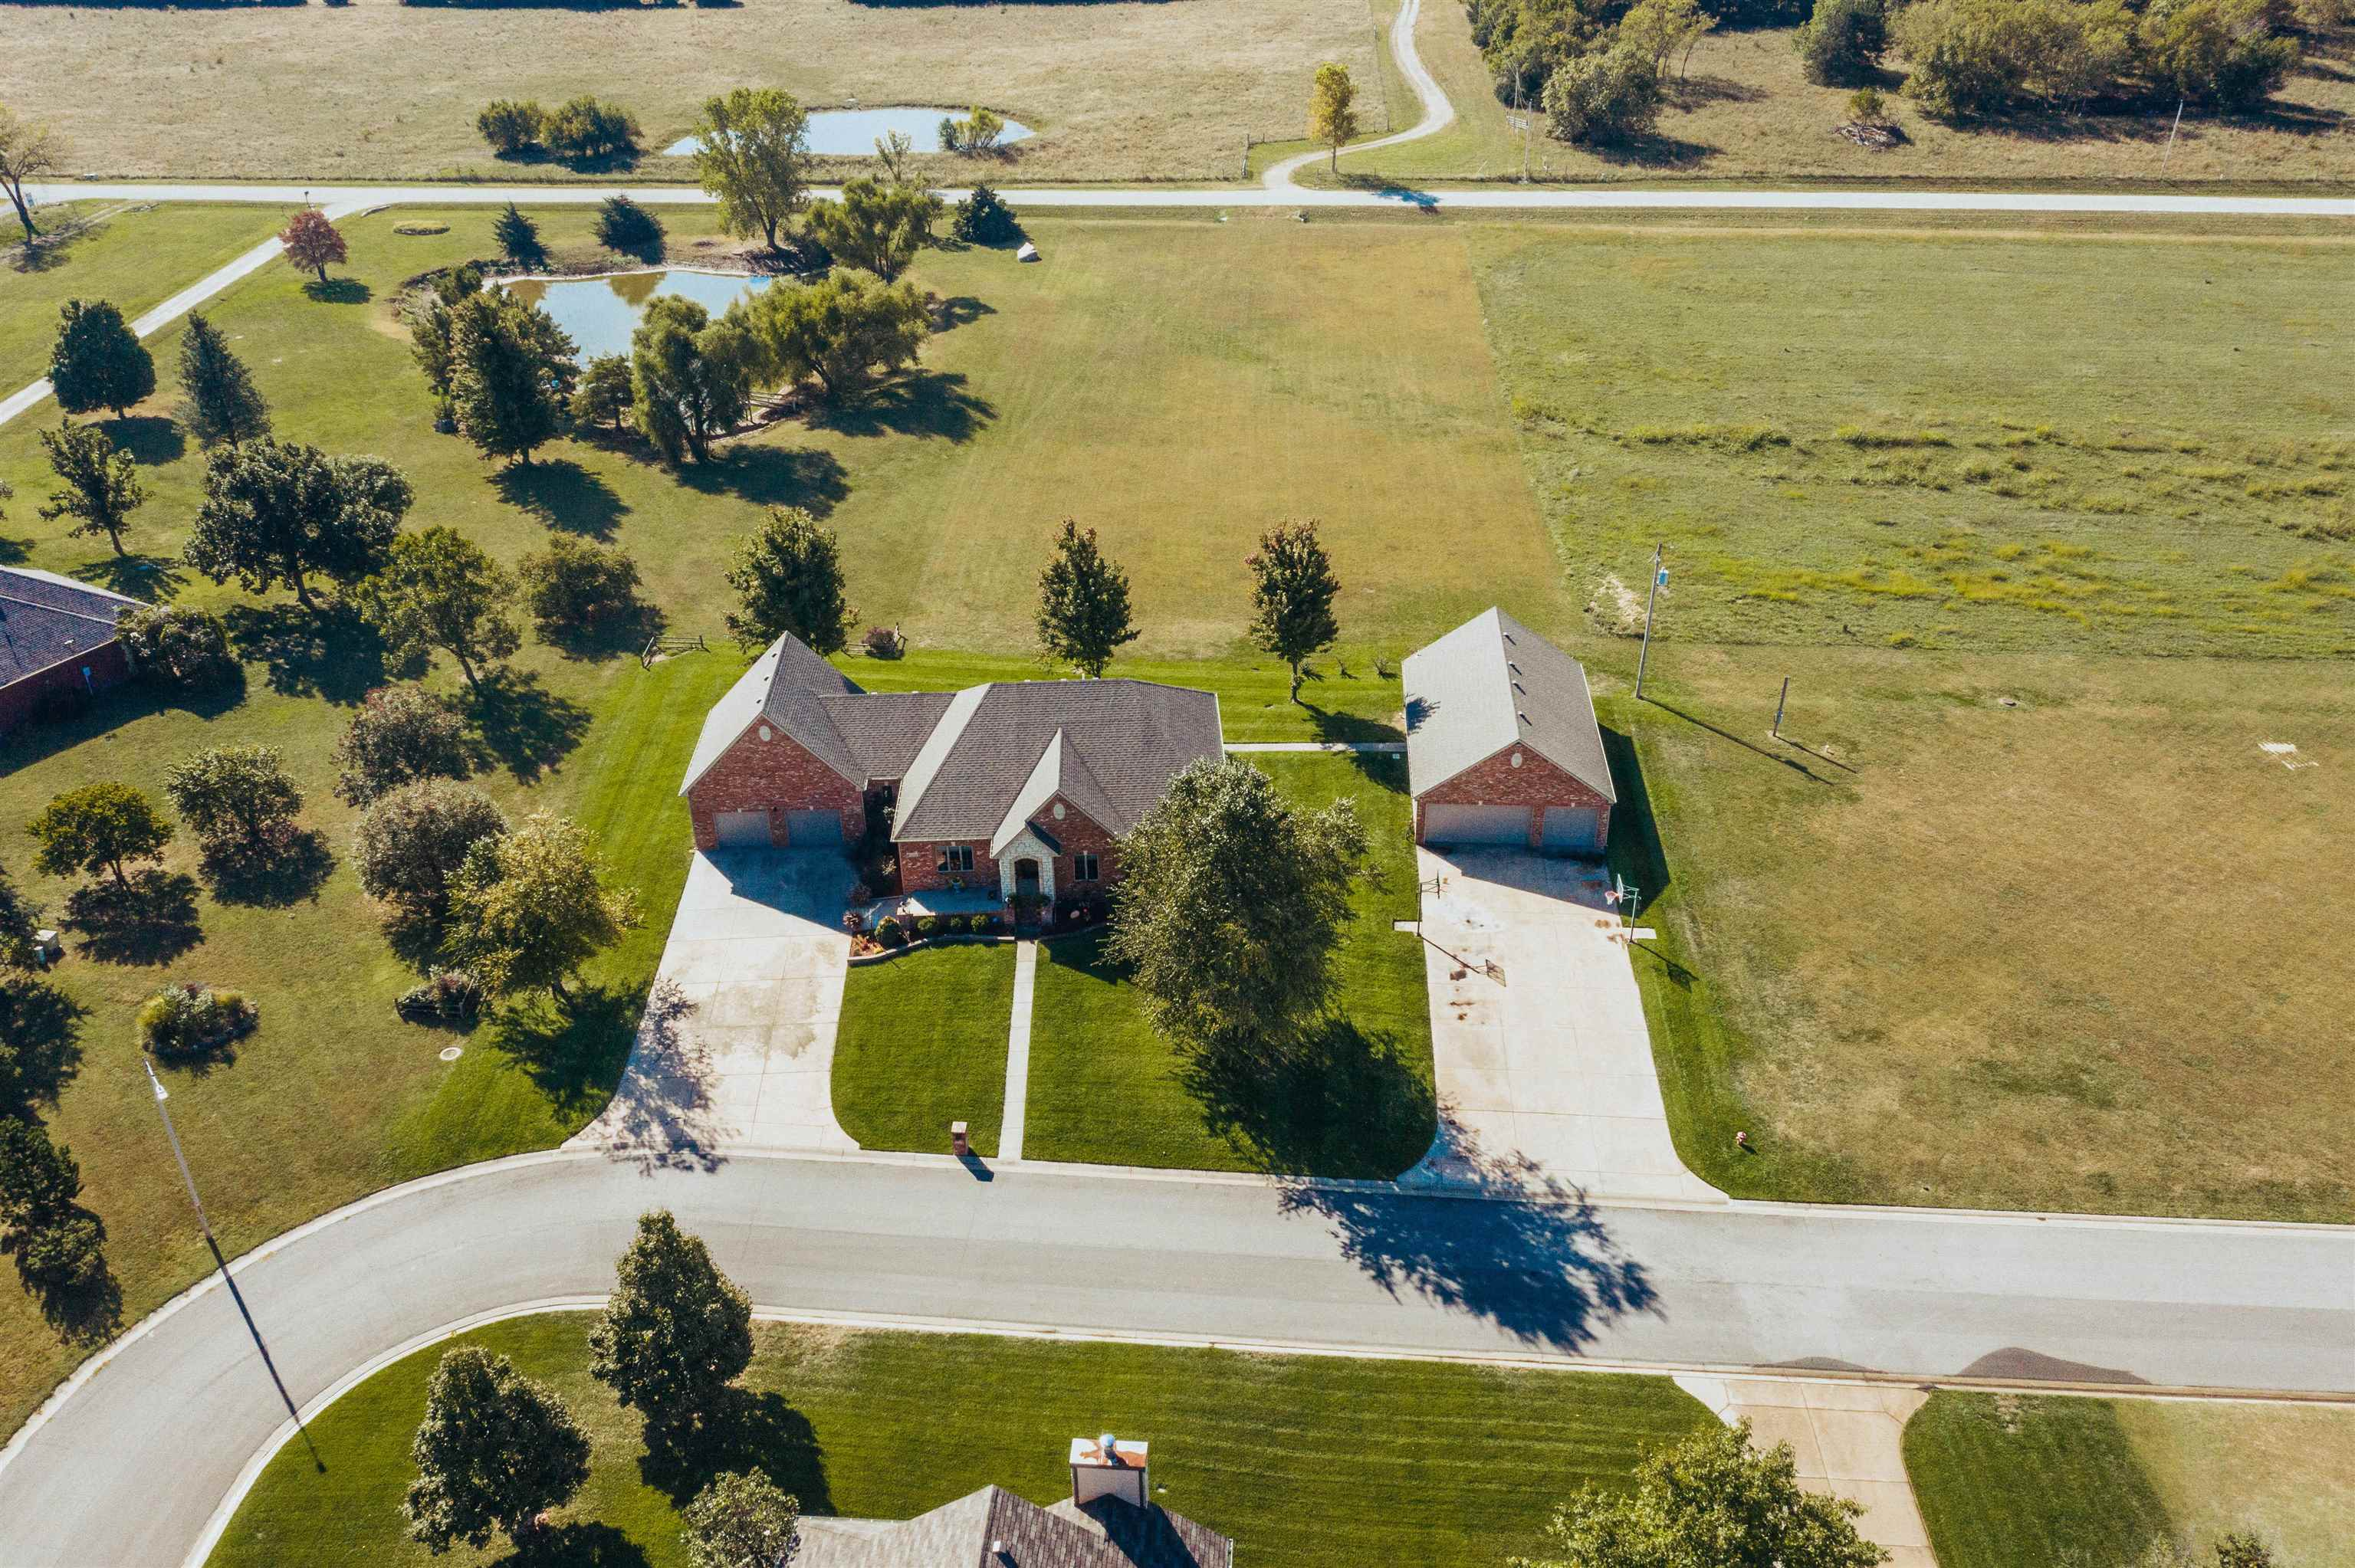 This residence has it all. Come see this spacious ranch style home nestled on 2.25 acres that includes over 4500 sq. ft. of living space. Great for families and for homeowners that like to entertain. Main floor is very open and includes multiple living rooms and multiple dining areas. Roof (2019) Class IV shingles (possible insurance discount). Basement has two large rec rooms, finished 5th bedroom with no windows, walkout to backyard and storm shelter. Enjoy the oversized 2 car garage, attached garage and the 30 x 50 detached garage that includes 1/2 bath. Easy access to the back of the lot off of the street.